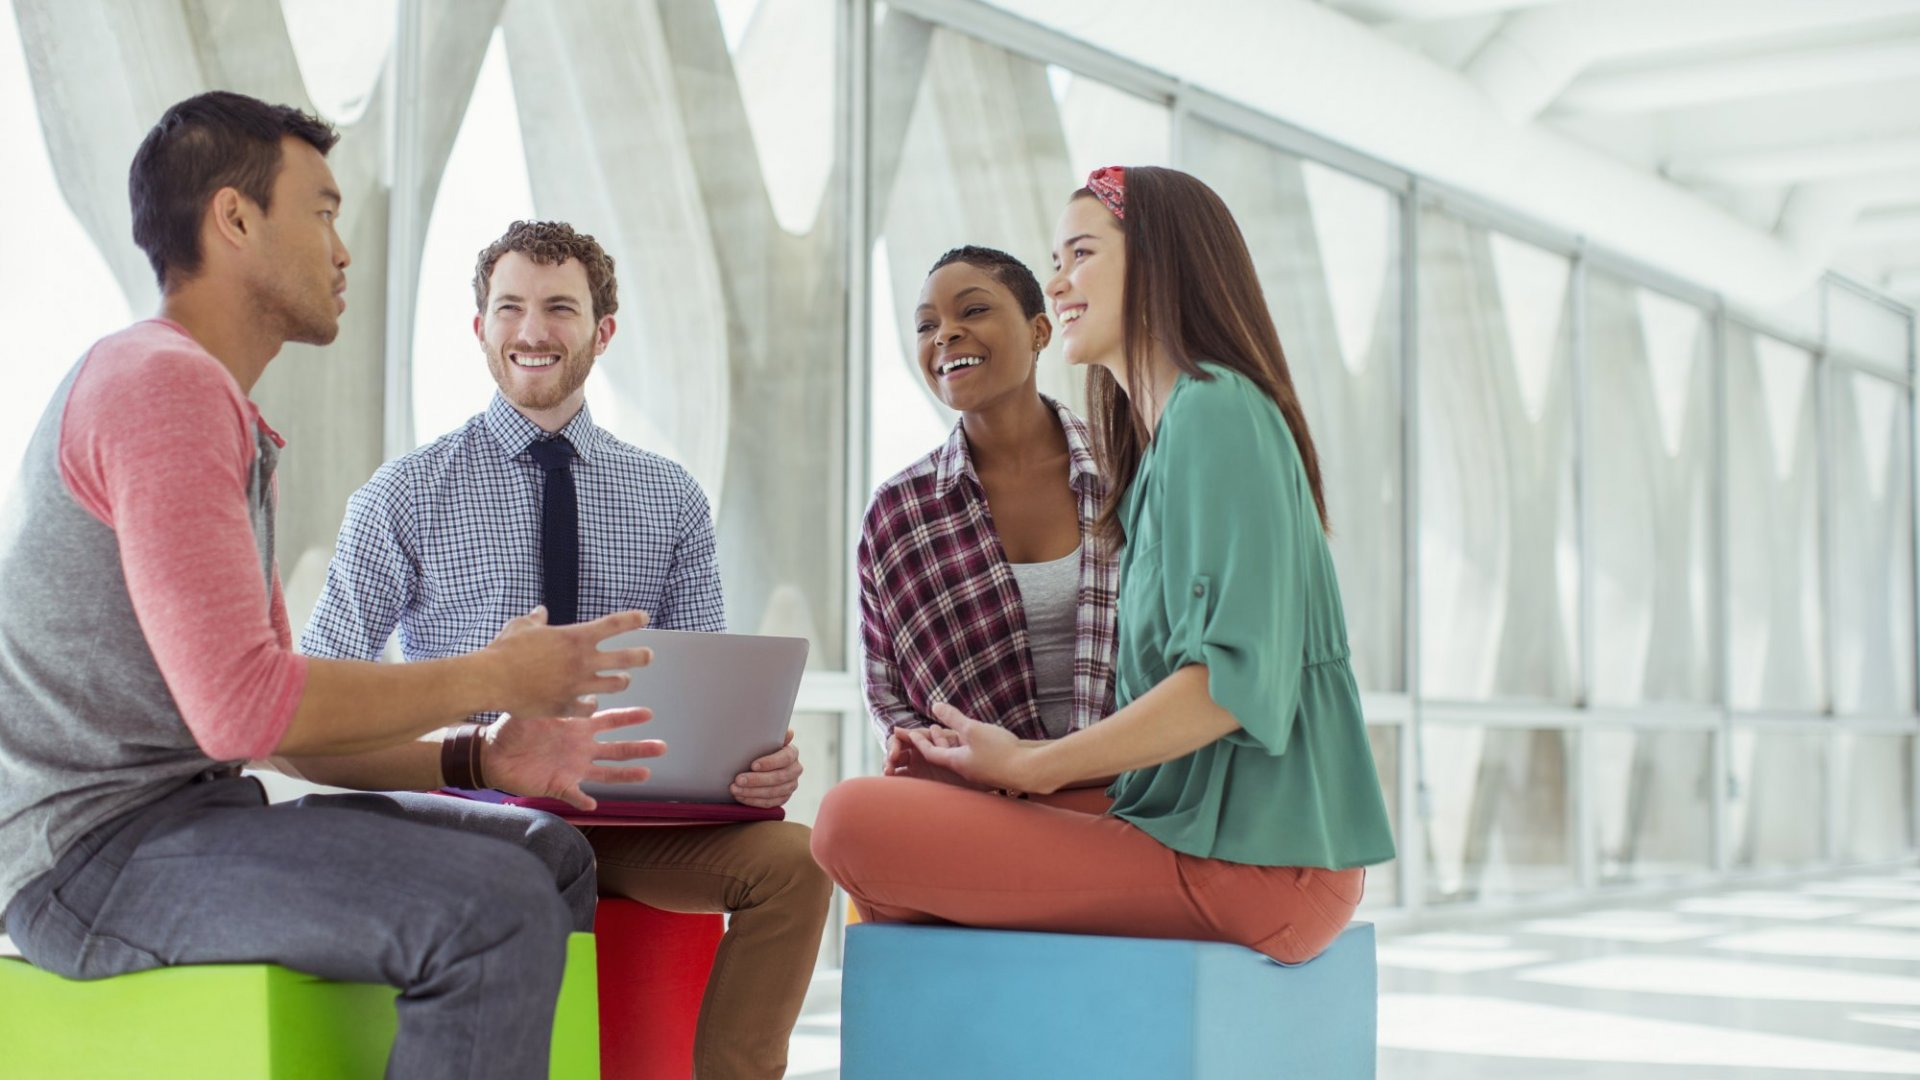 How to Attract More Innovative Employees to Your Workplace